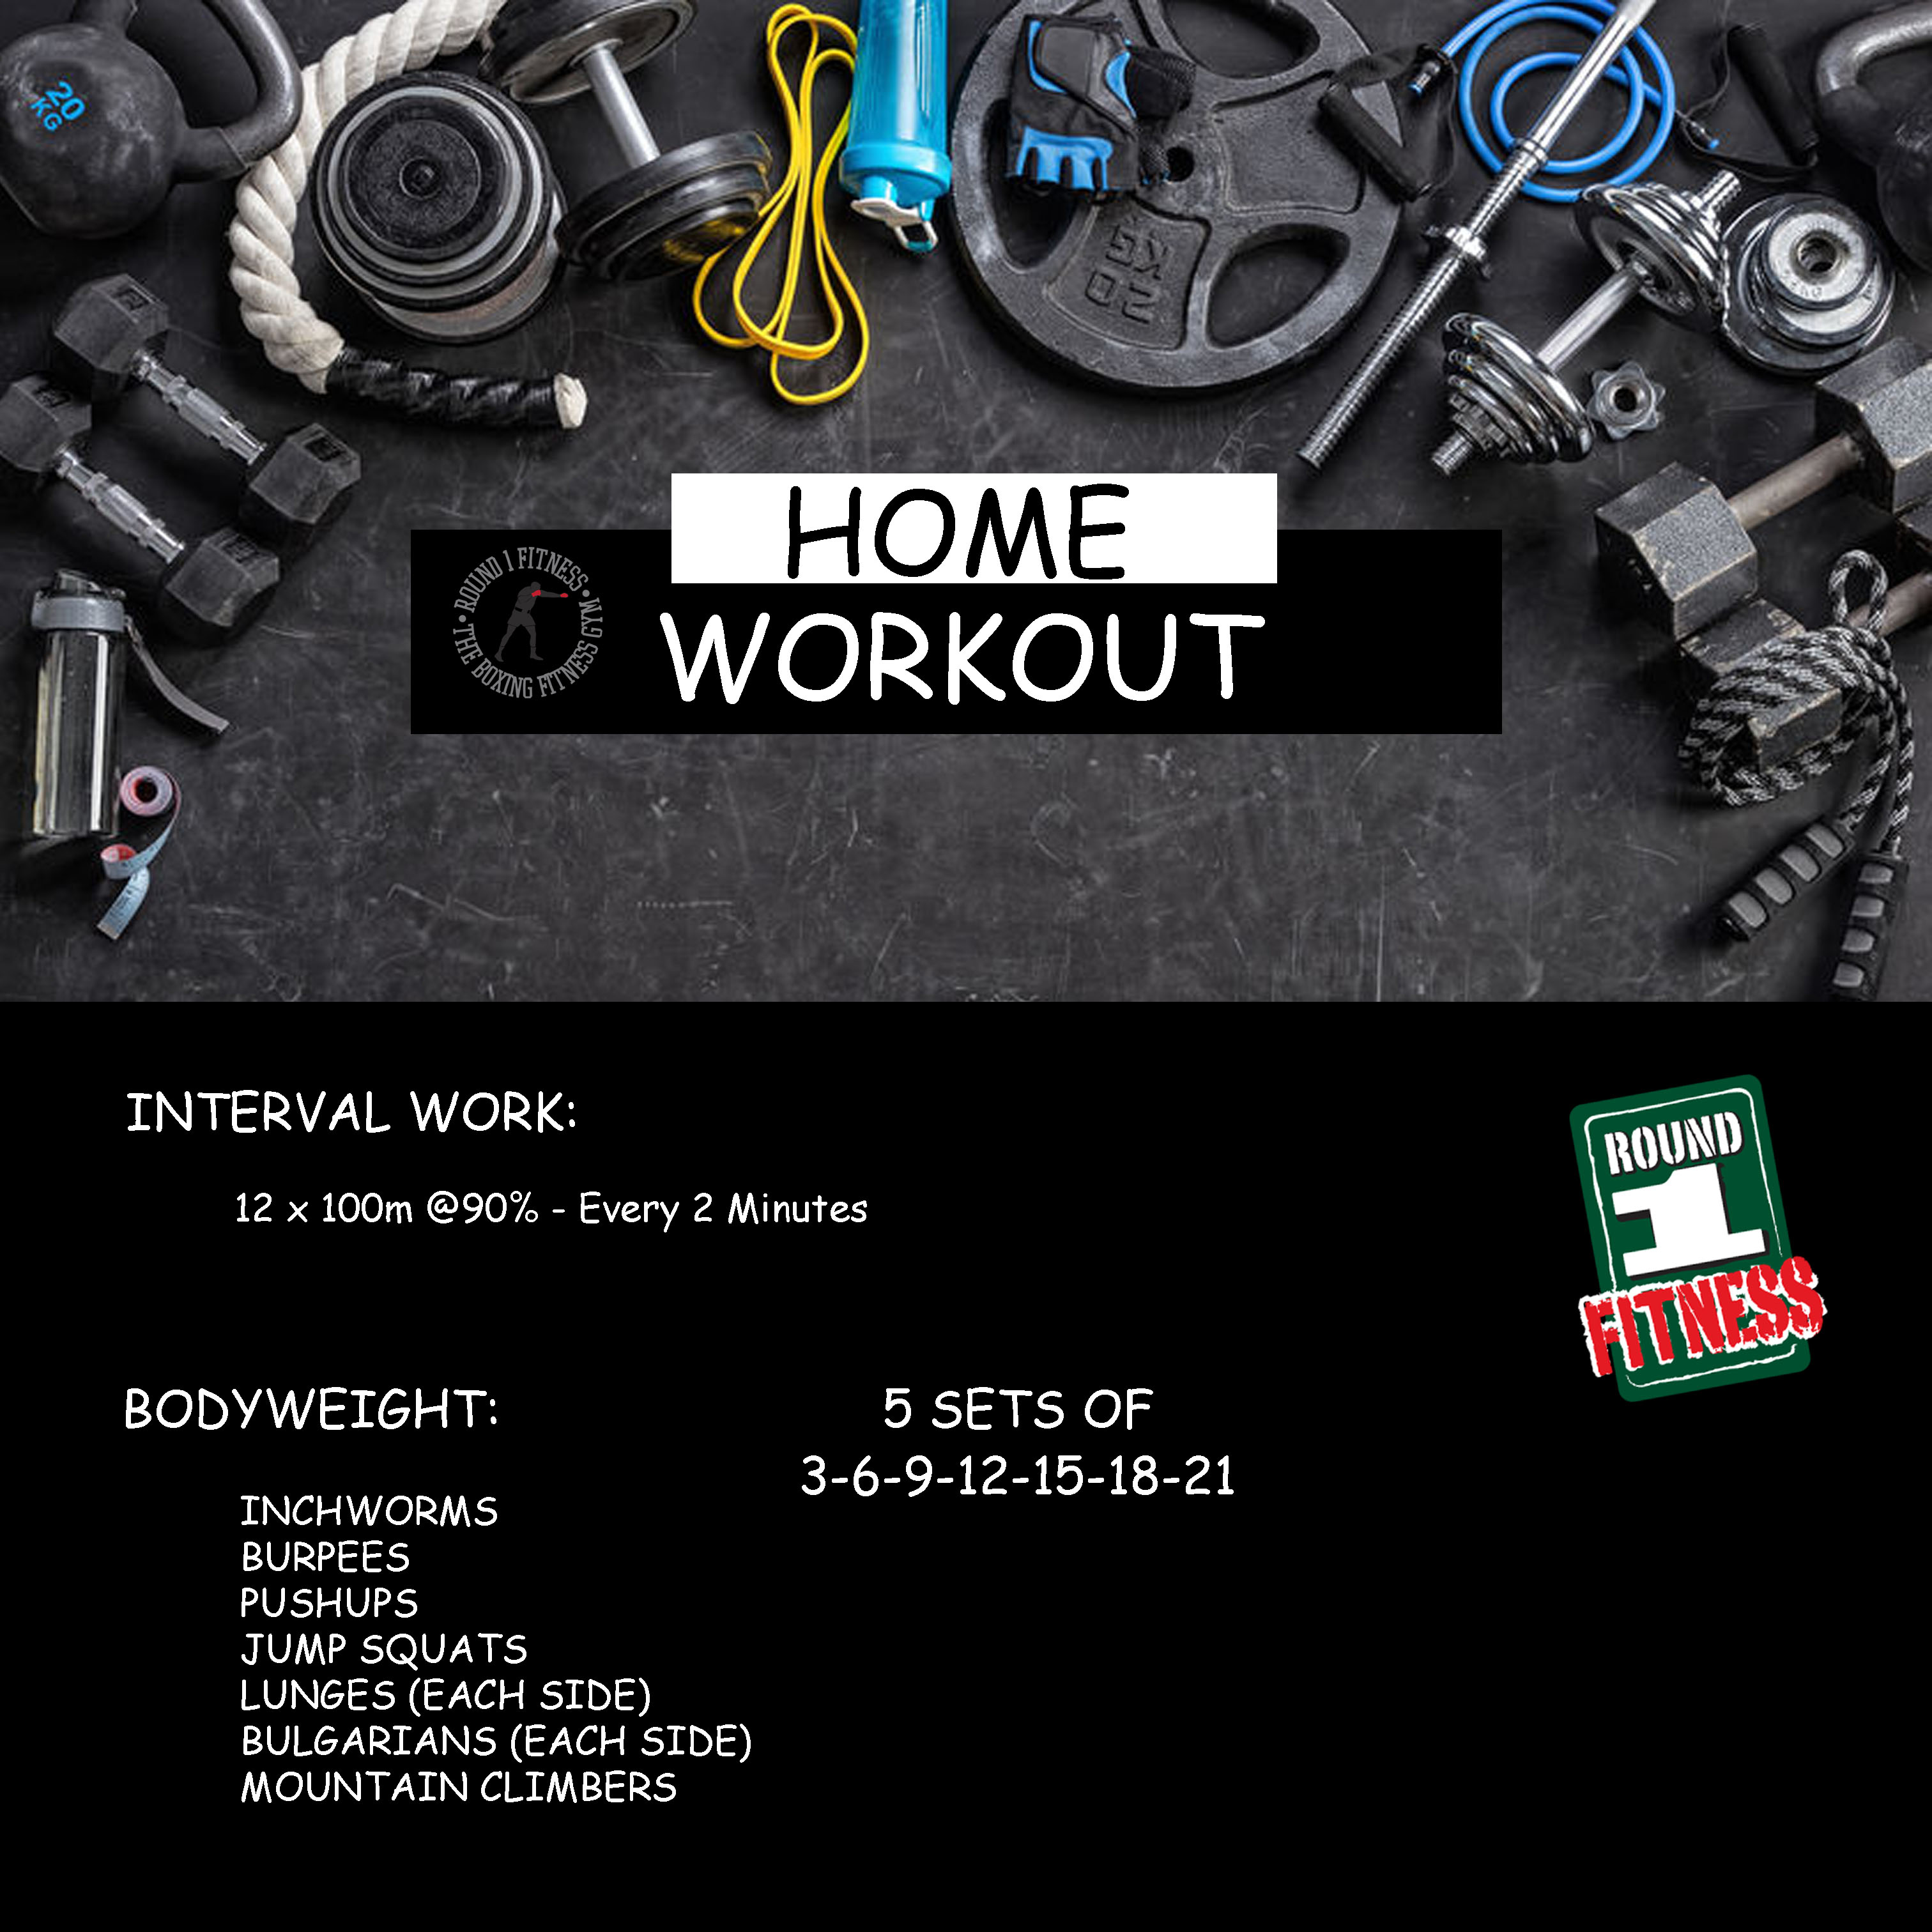 Home Workout:  Tuesday May 12th